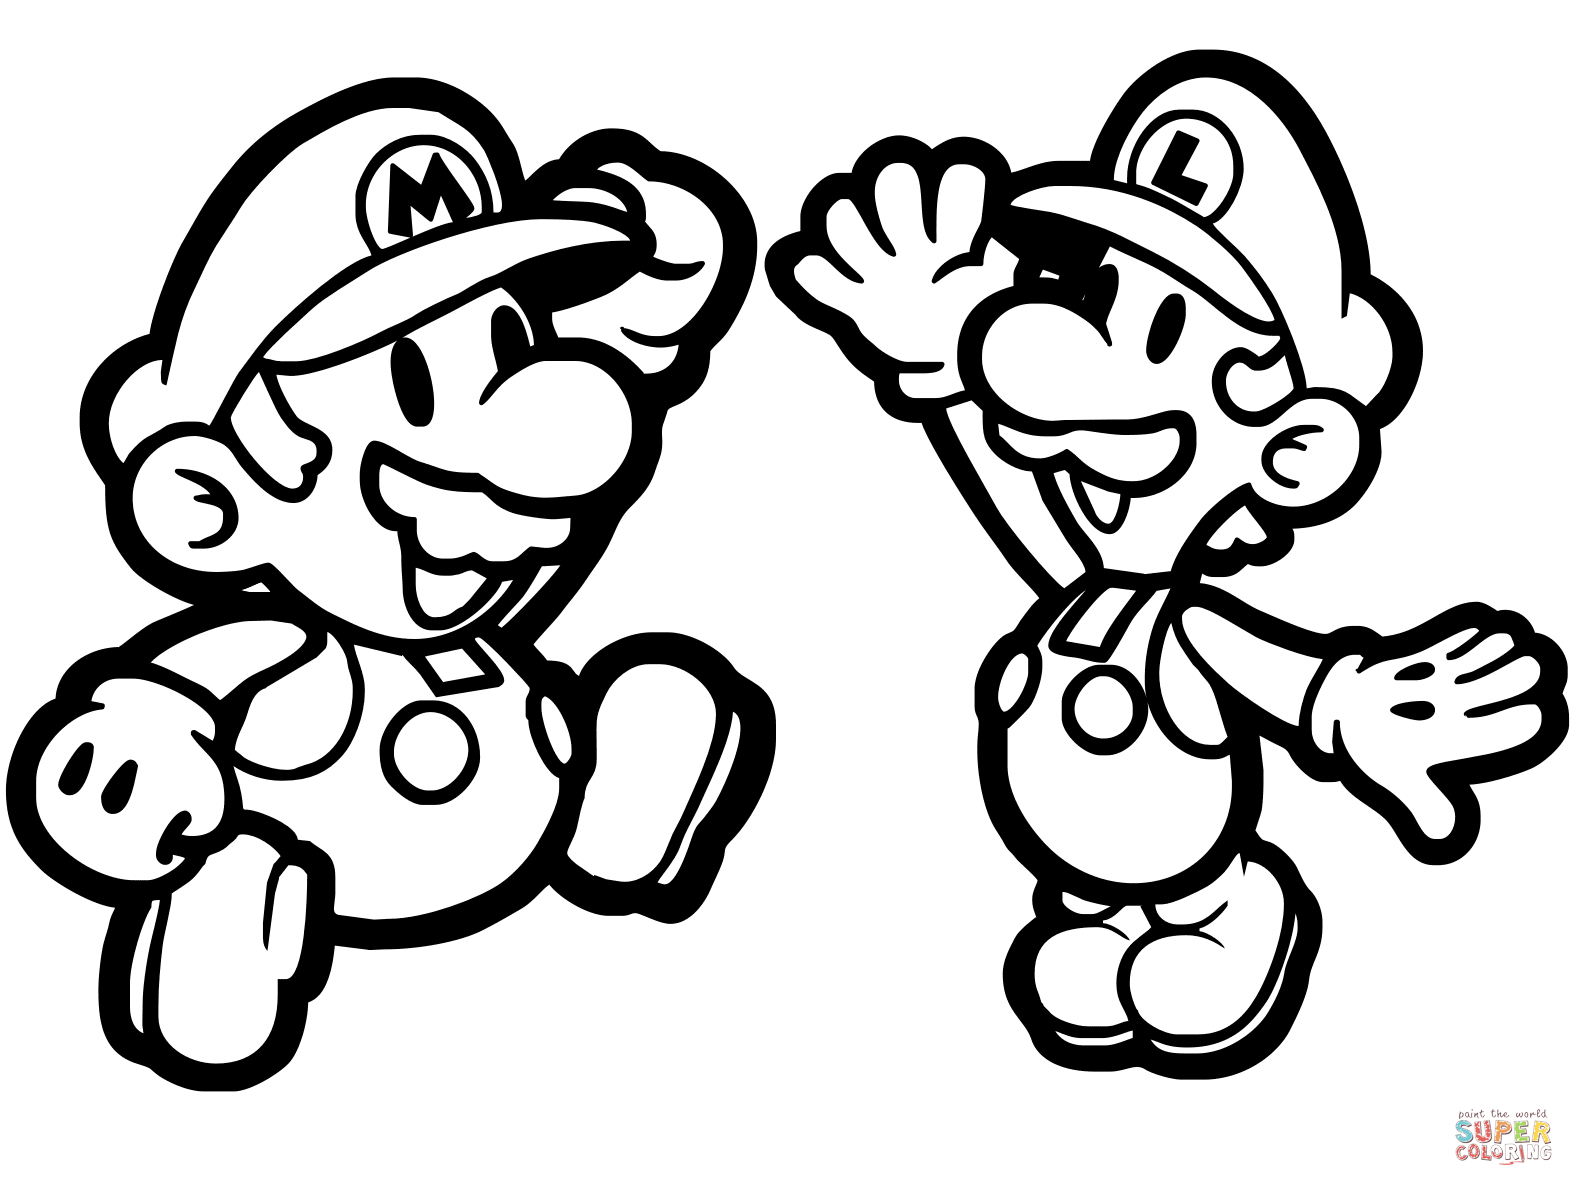 mario and luigi printable coloring pages printable luigi coloring pages for kids cool2bkids printable luigi mario coloring pages and